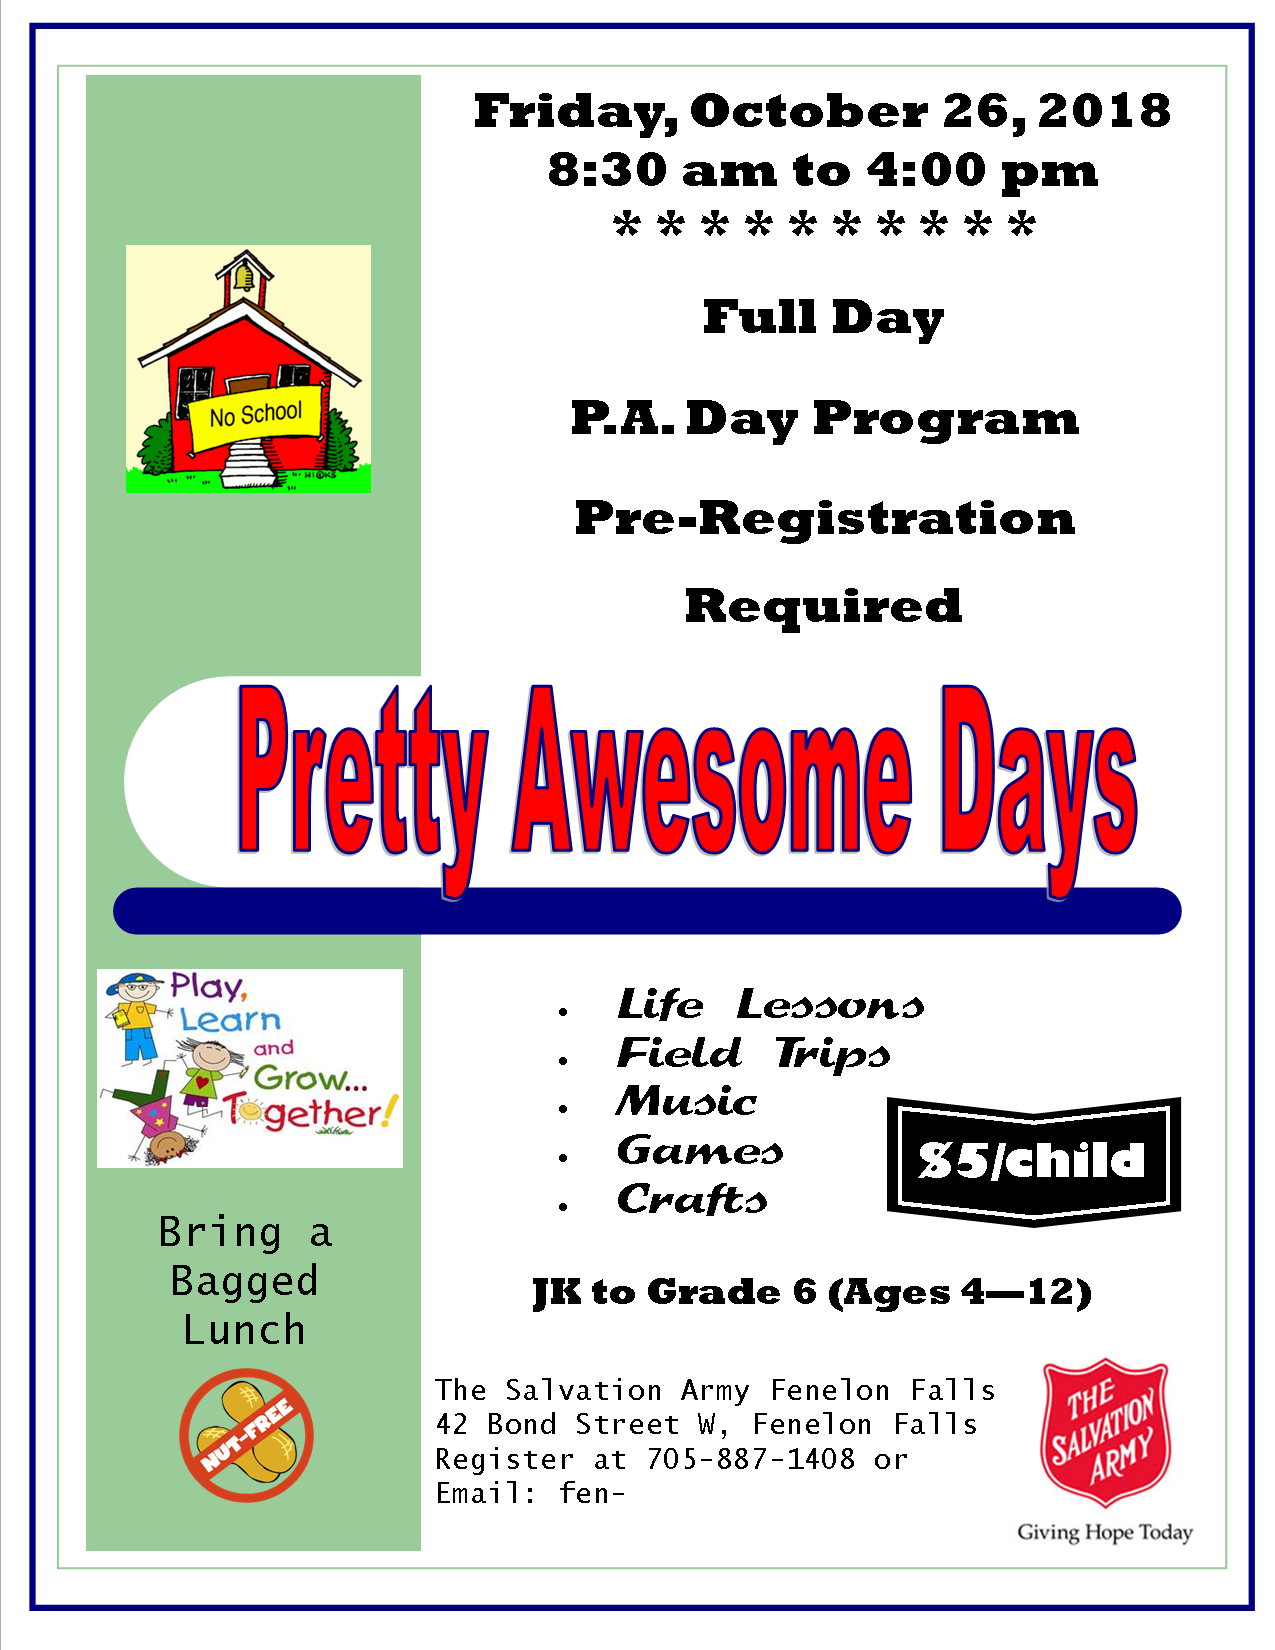 PA Day Poster 2018.png